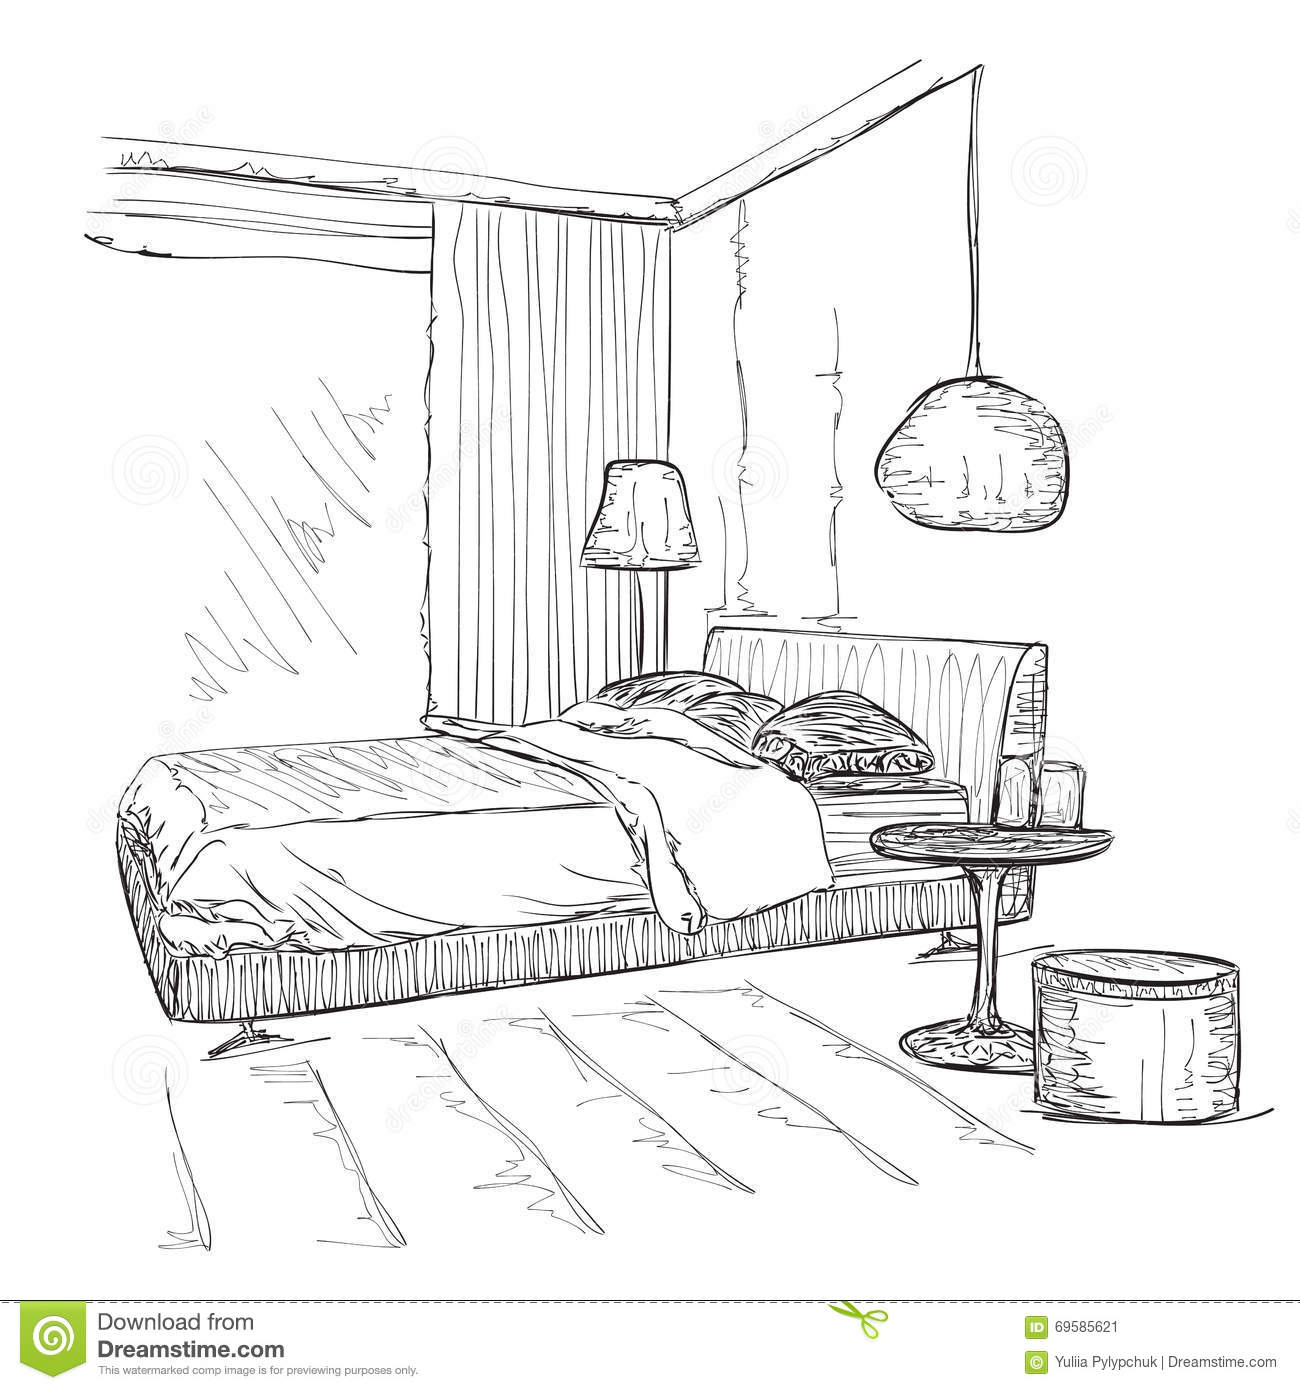 dessin dans un chambre id es novatrices de la conception. Black Bedroom Furniture Sets. Home Design Ideas